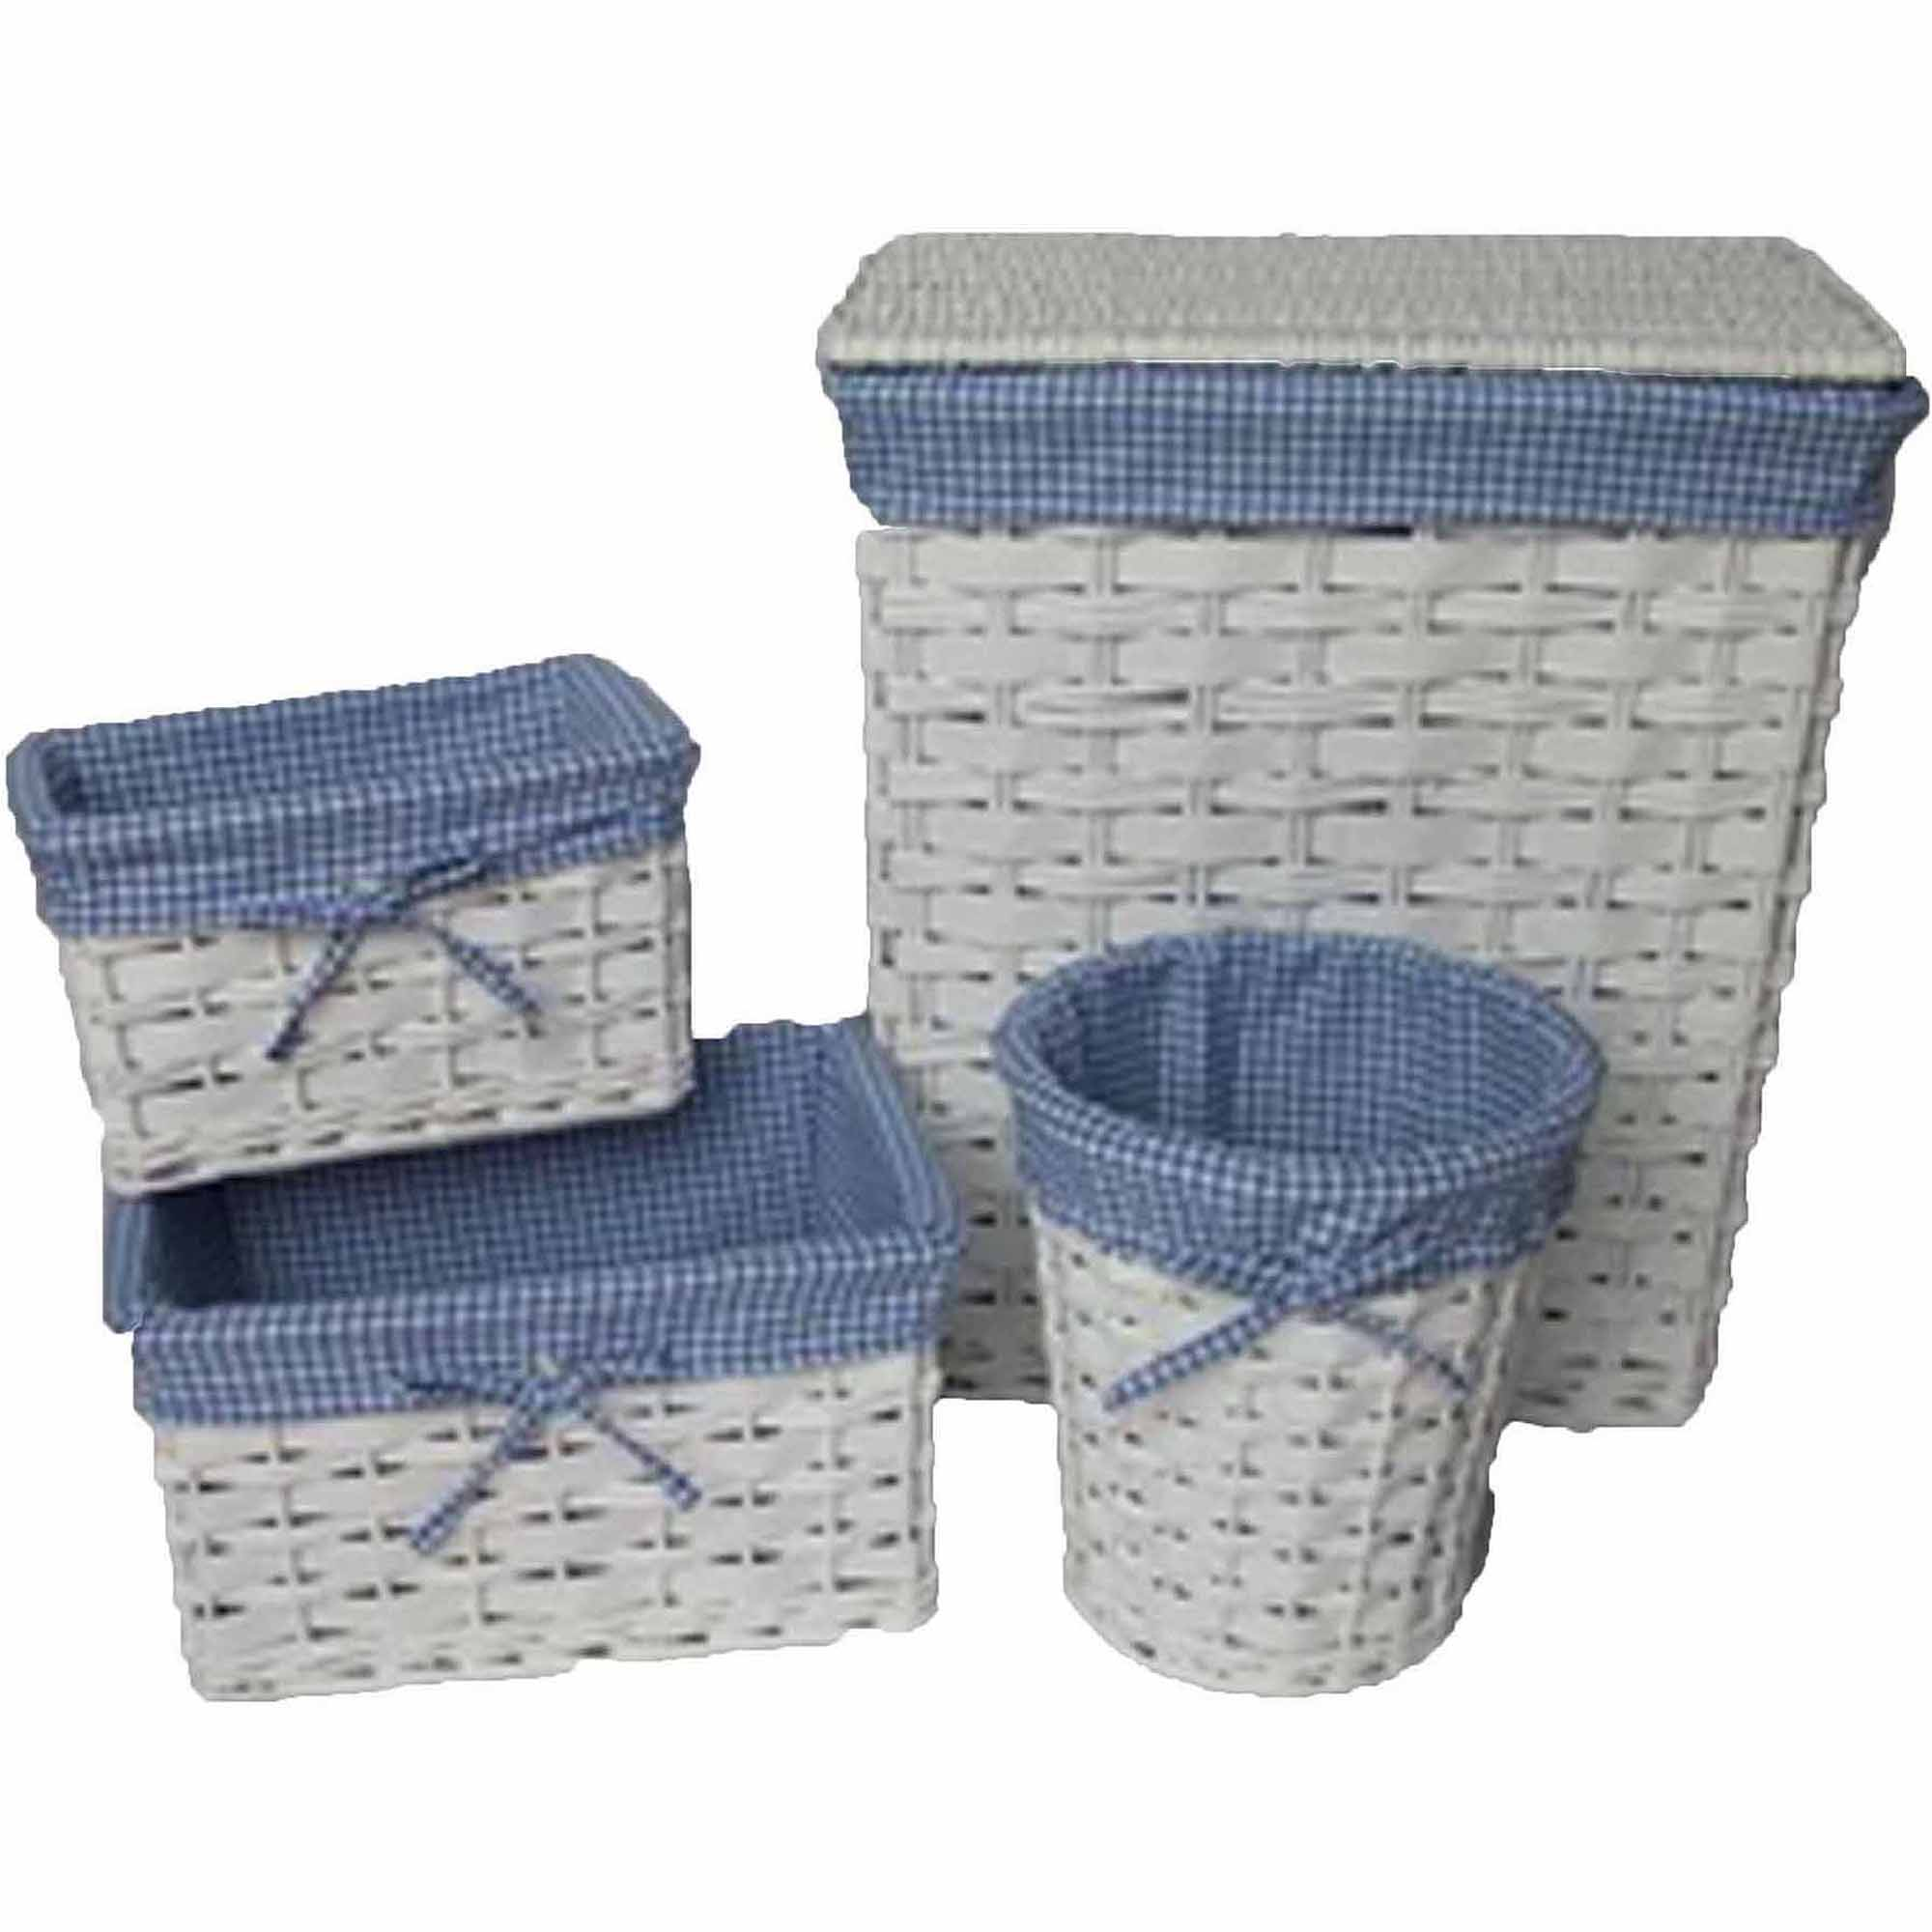 Baum 4-Piece Hamper Set with Blue Gingham Liners, White by Baum